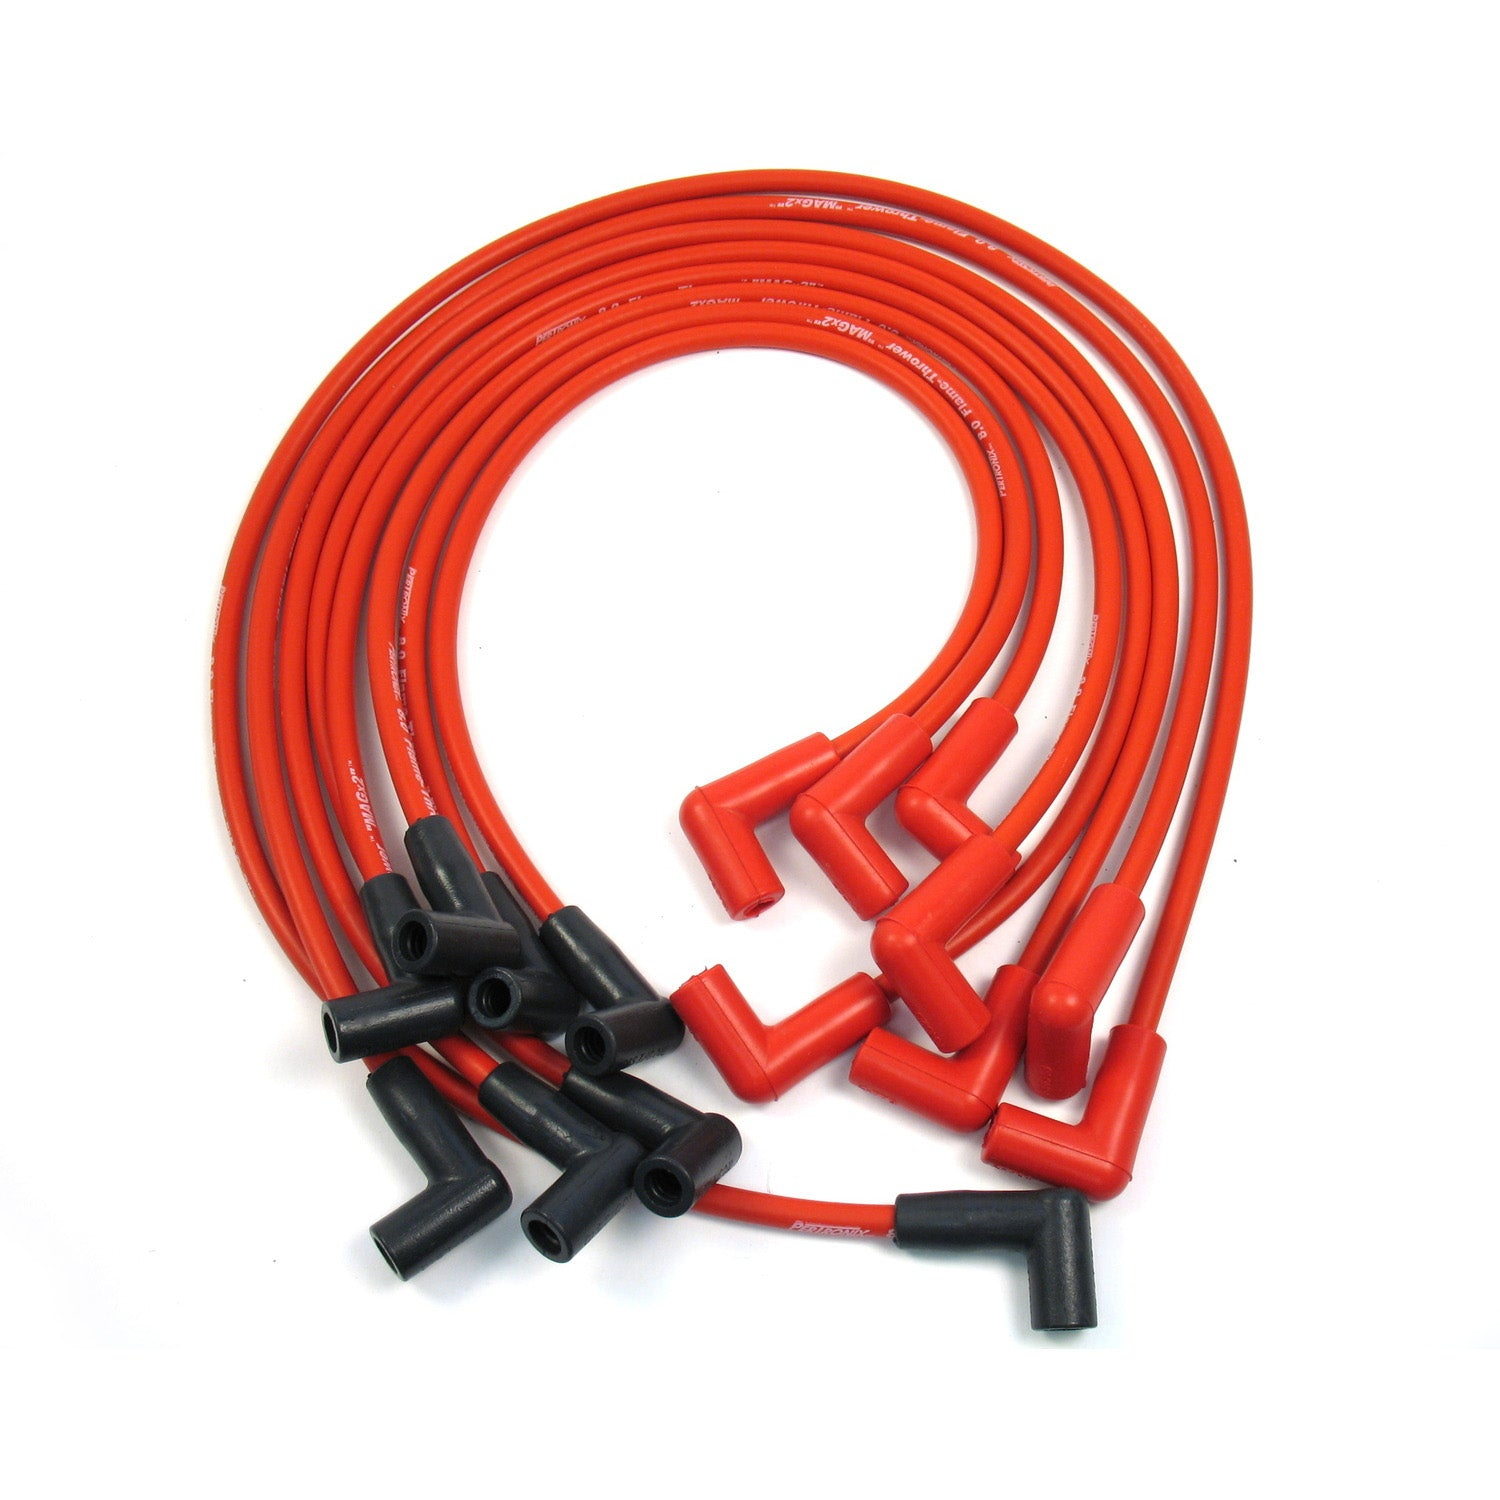 PerTronix 808412 Flame-Thrower Spark Plug Wires 8 cyl 8mm GM HEI Custom Fit Red